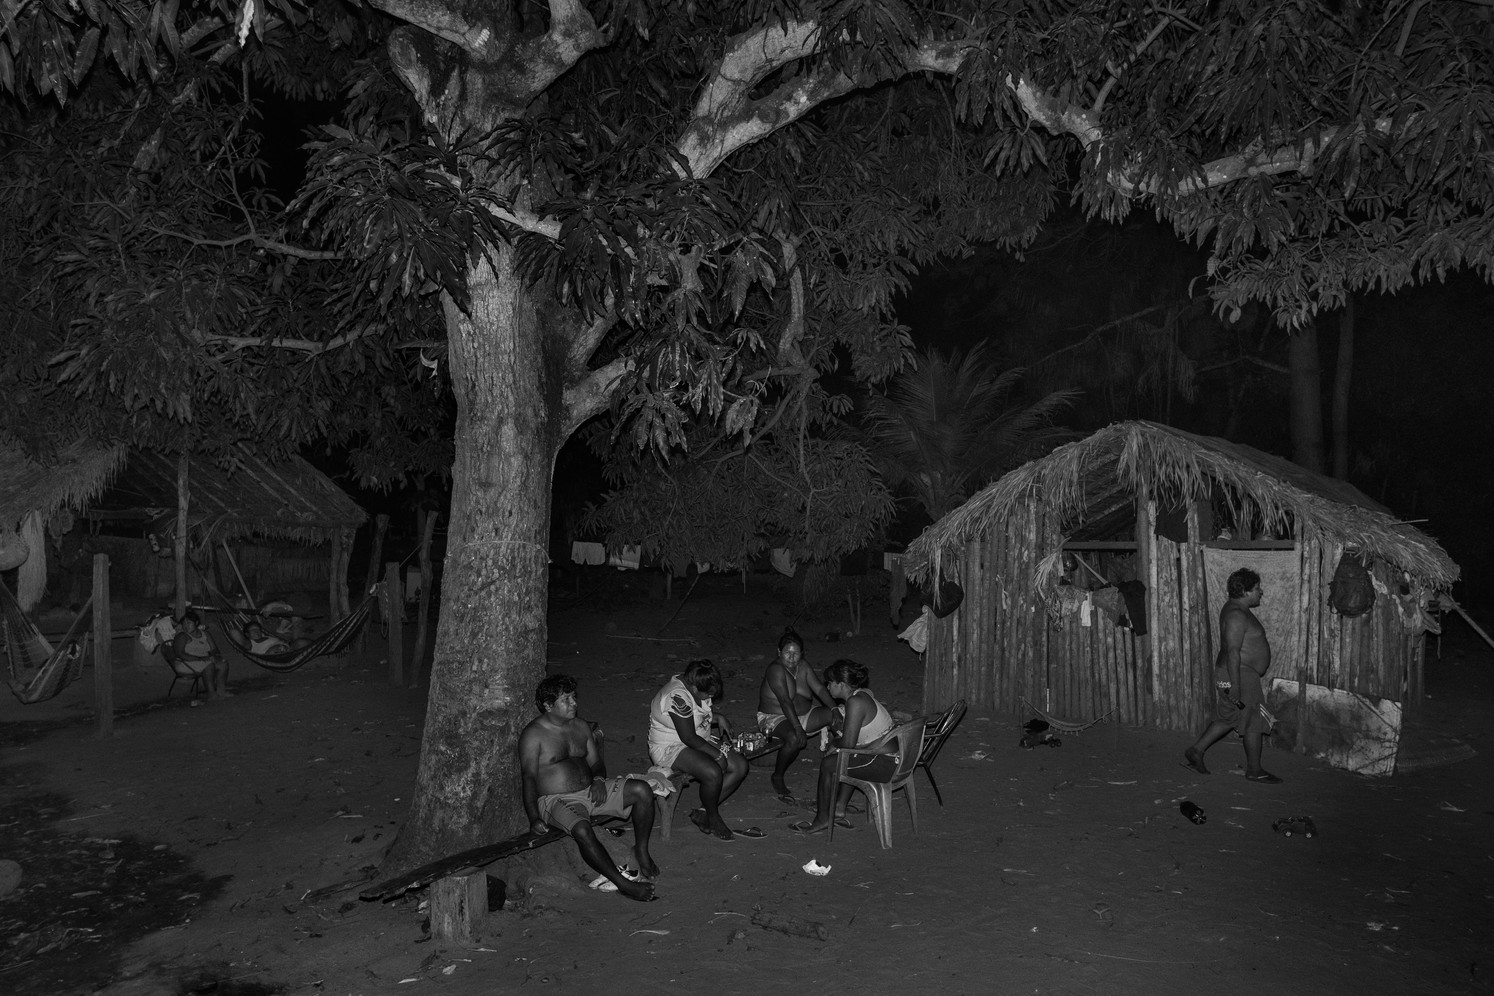 The Gaviao village inside the Governador indigenous land in the Maranhao state.